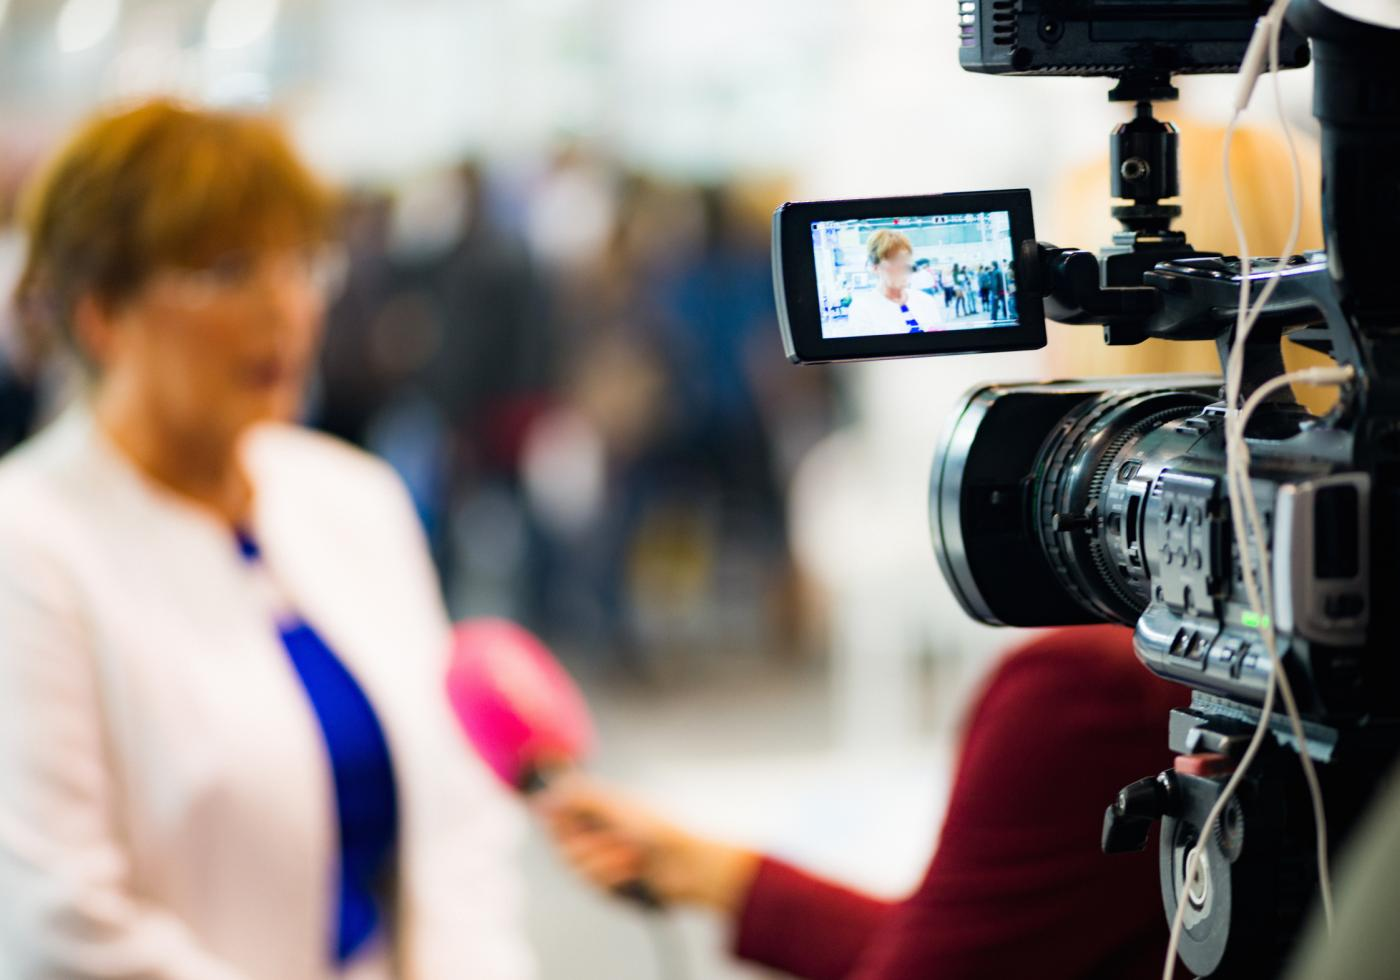 Lady being interviewed on camera